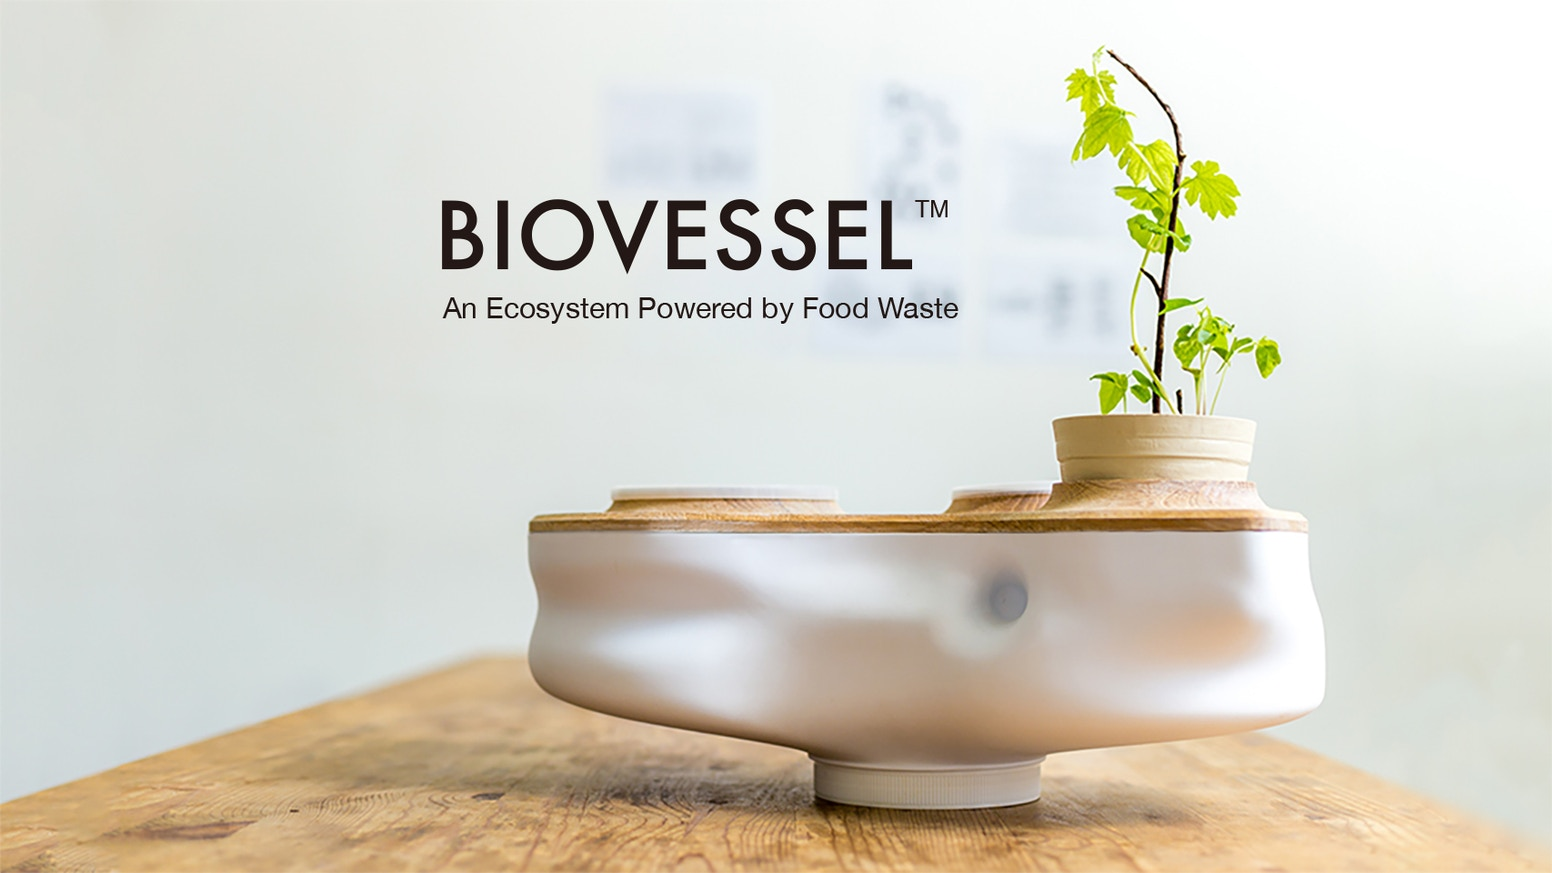 Waste No More: BIOVESSEL brings nature into urban homes for a sustainable lifestyle. Composting made possible for city-dwellers.